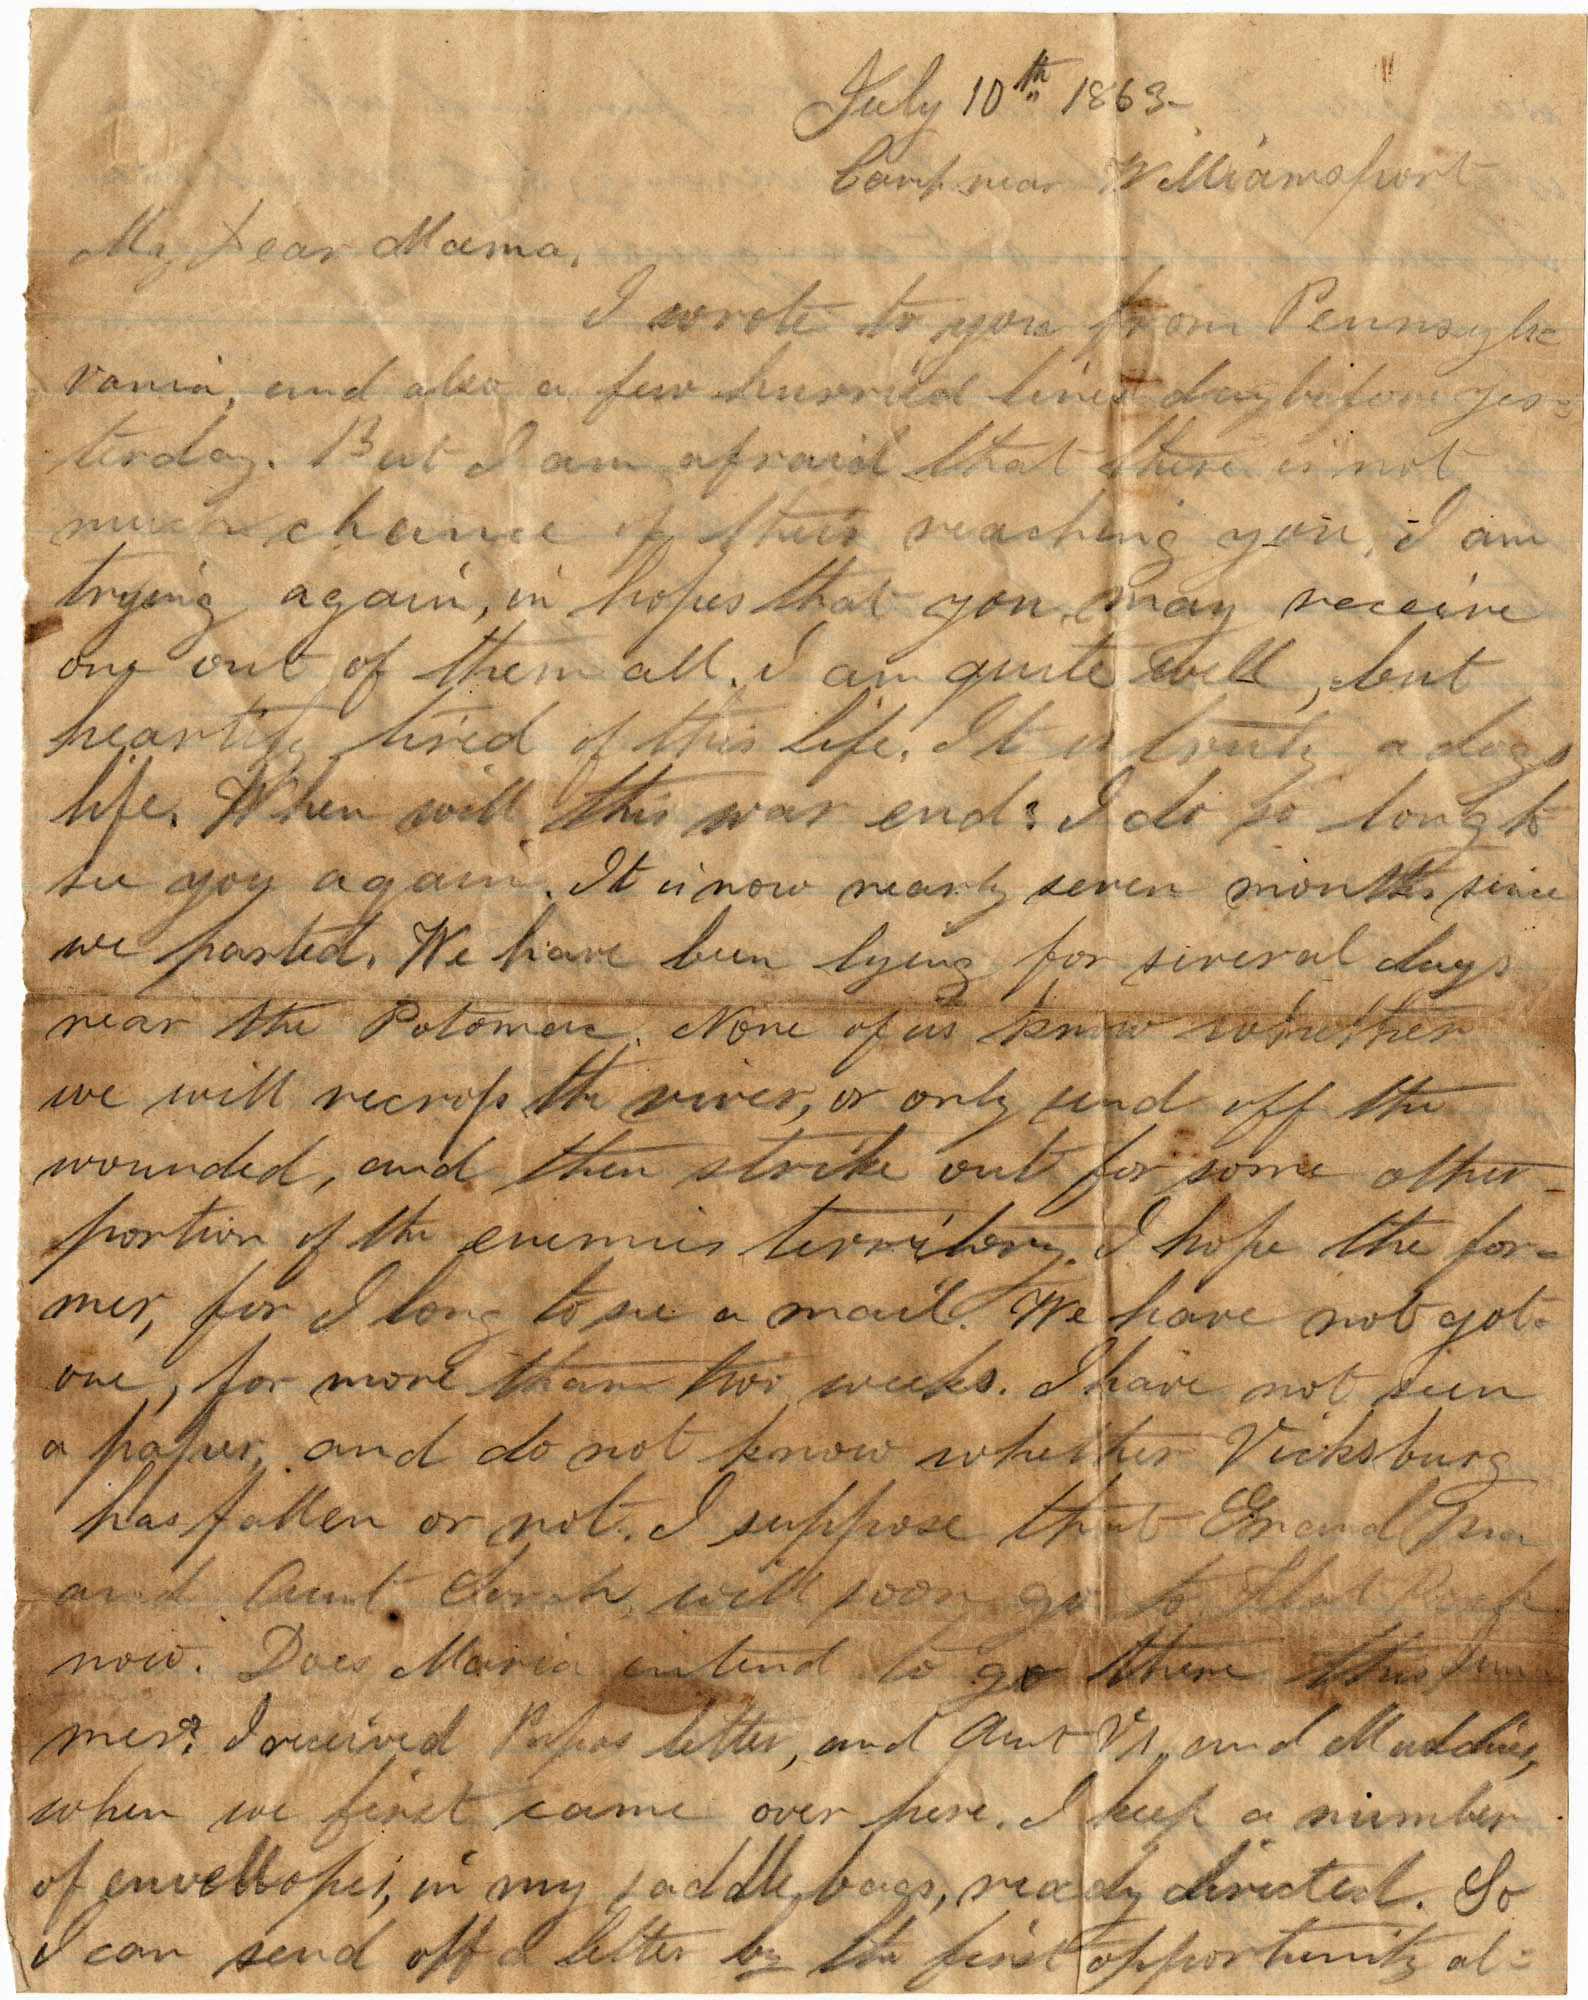 090. Willis Keith to Anna Bell Keith -- July 10, 1863